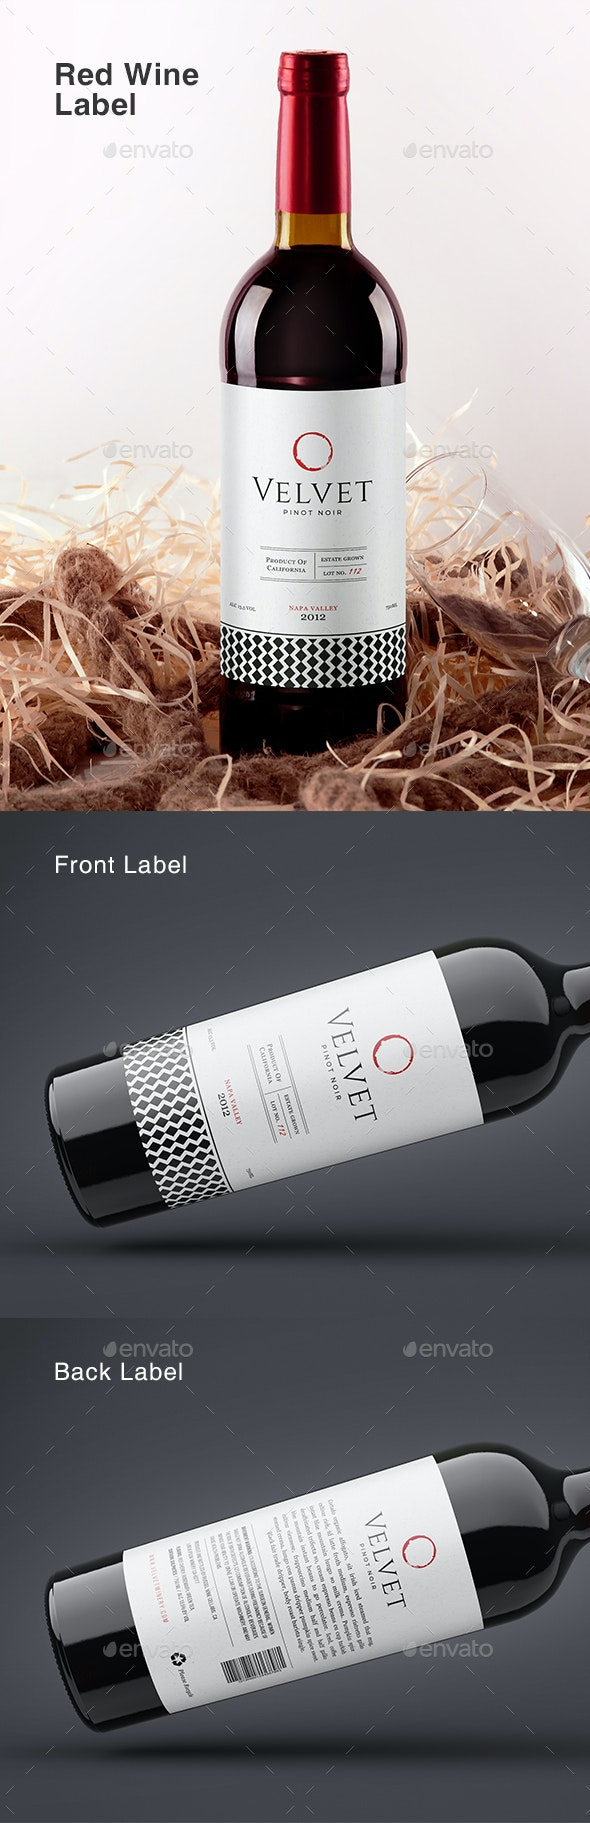 Wine Label Template - Packaging Print Templates